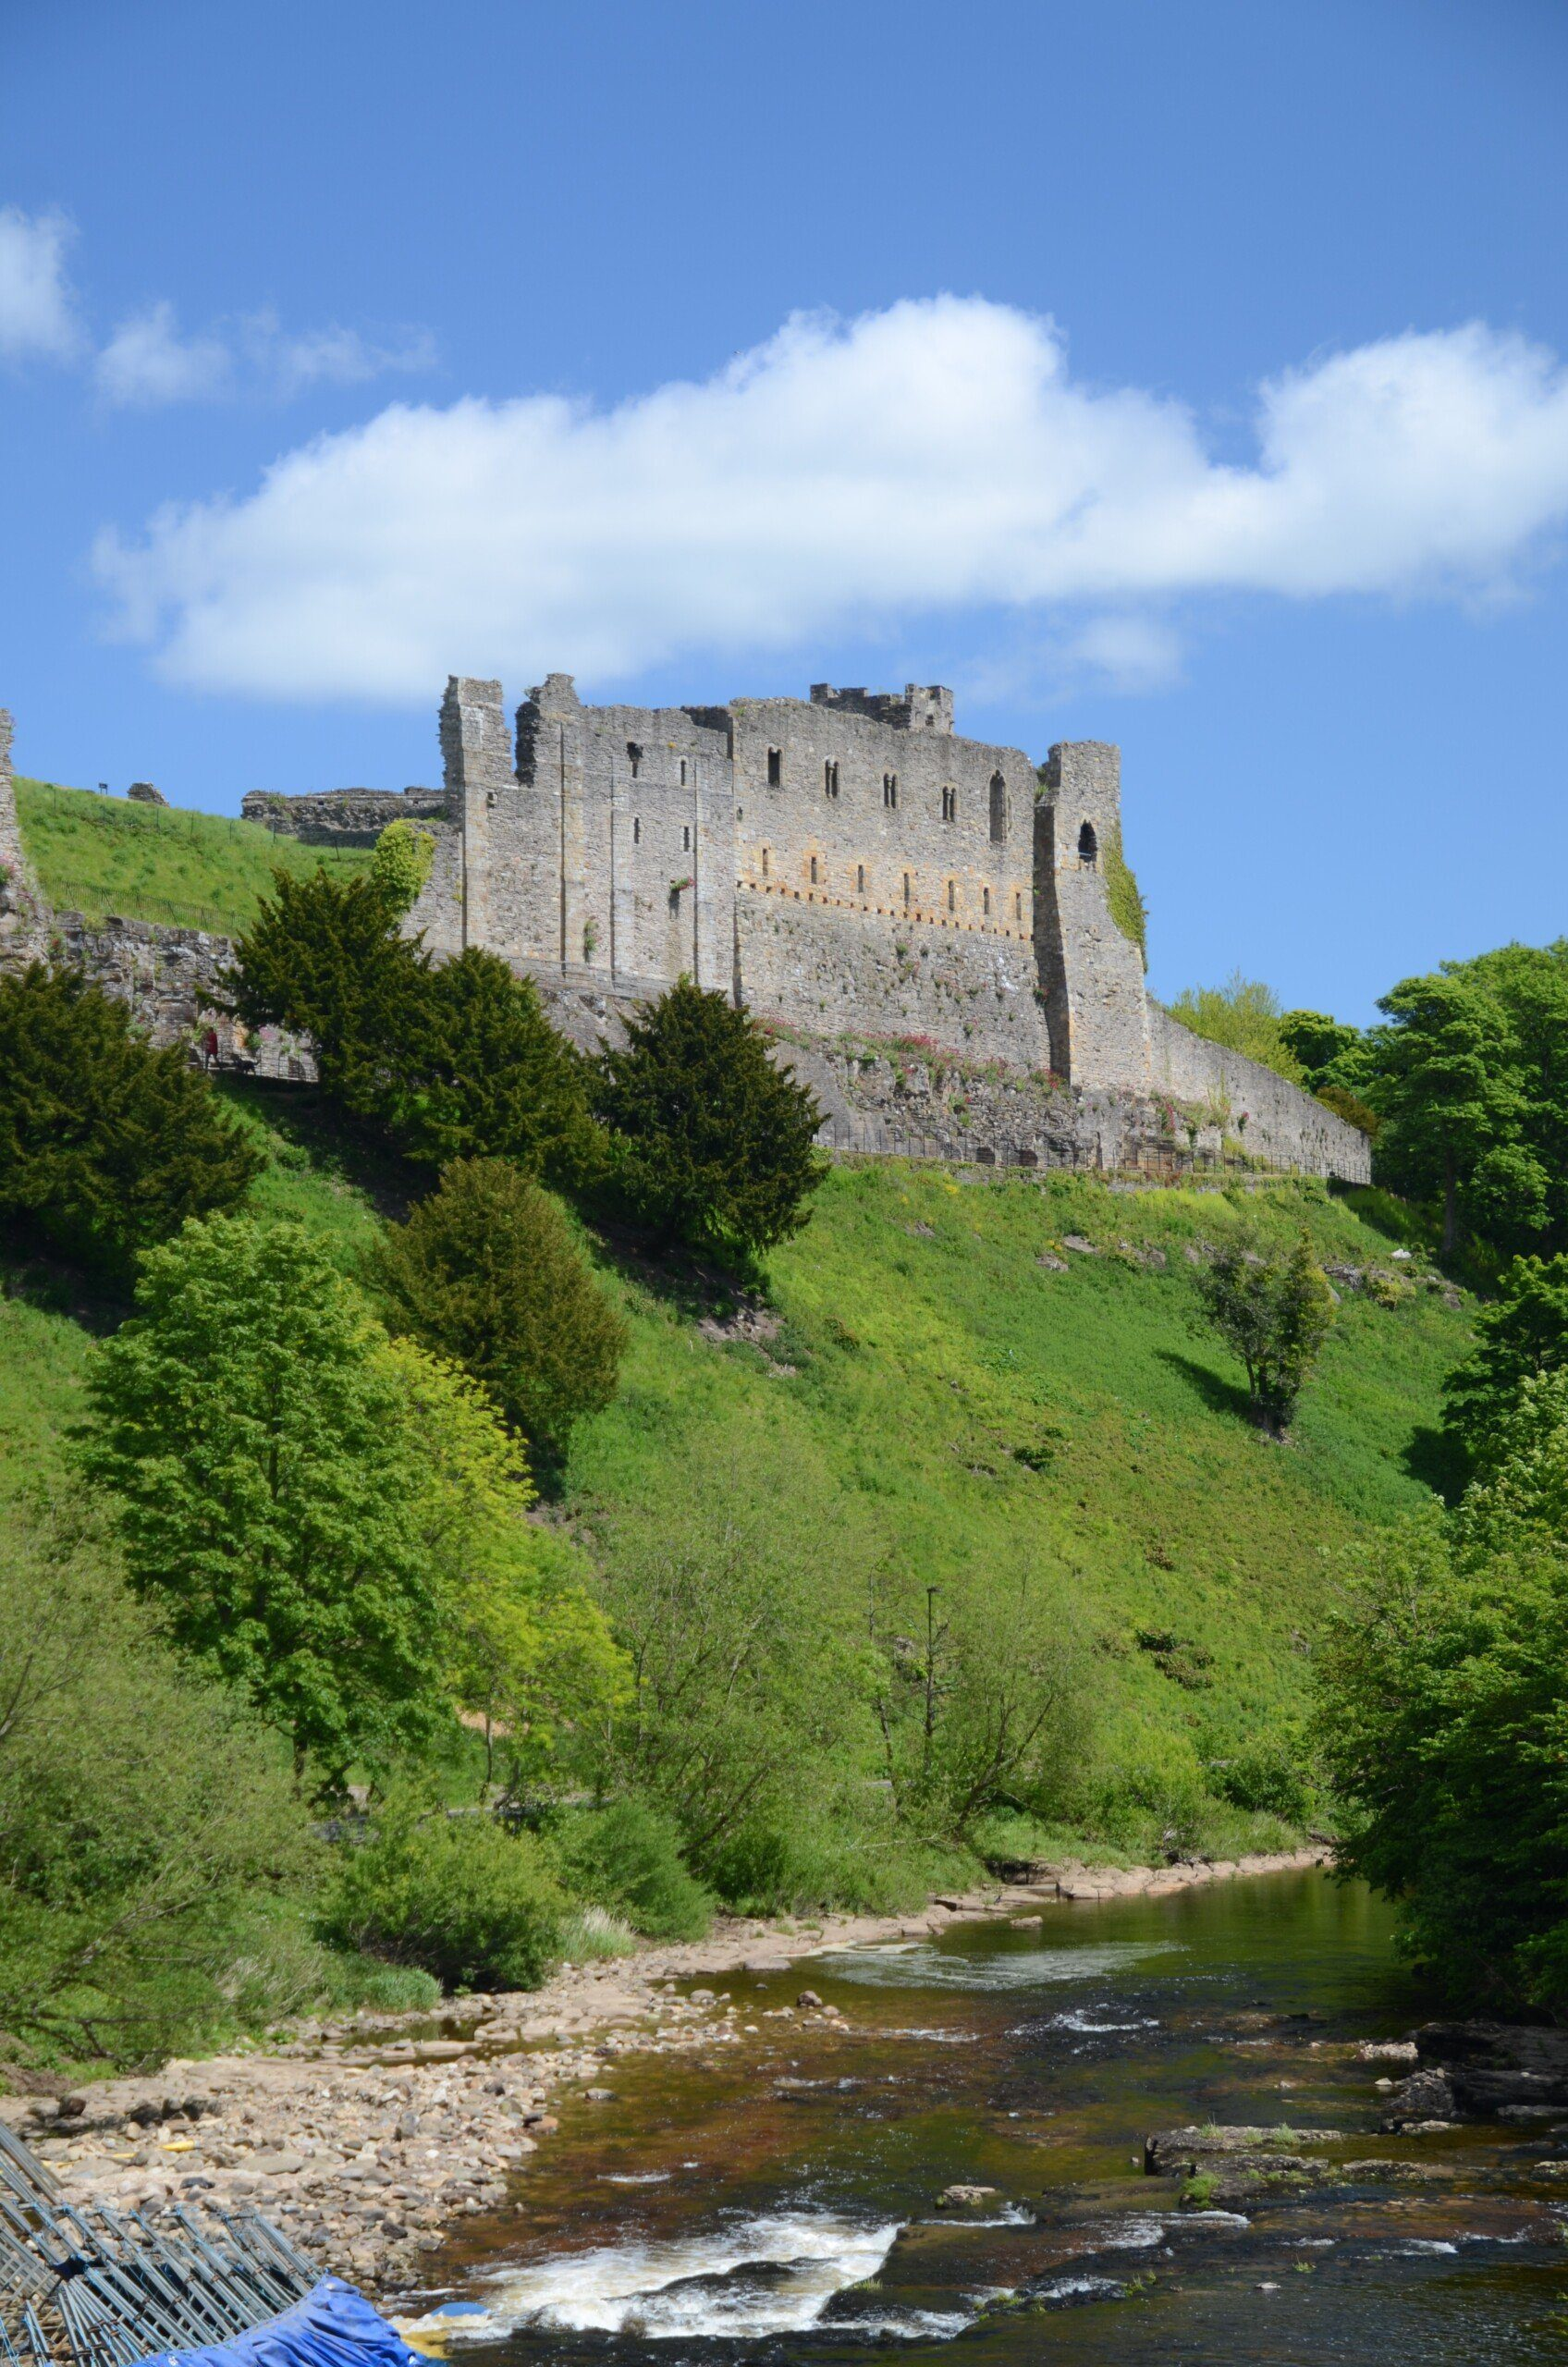 The ruins of Richmond Castle, rising above the River Swale